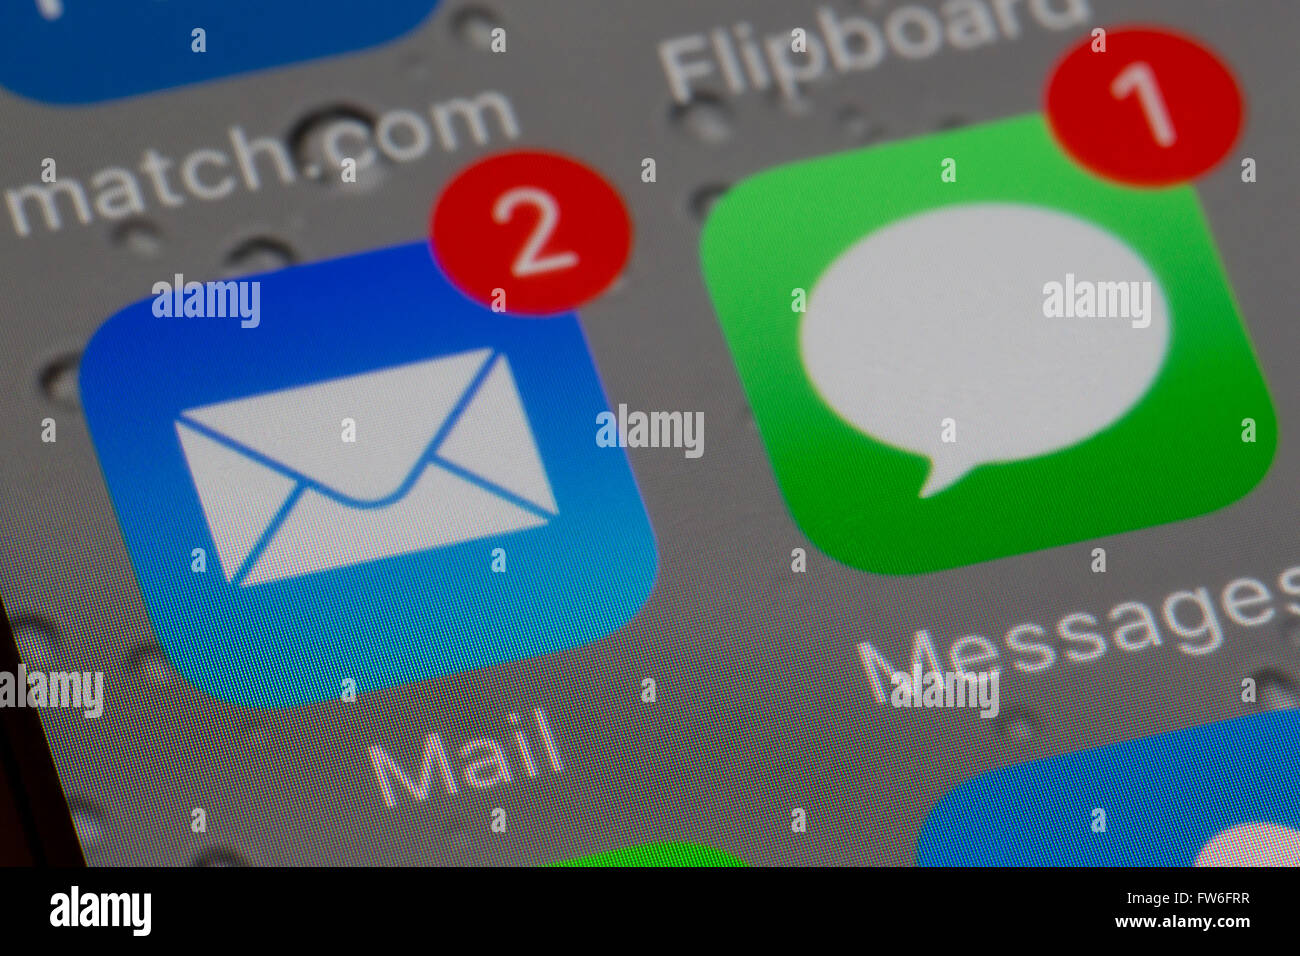 email and text message apps - Stock Image